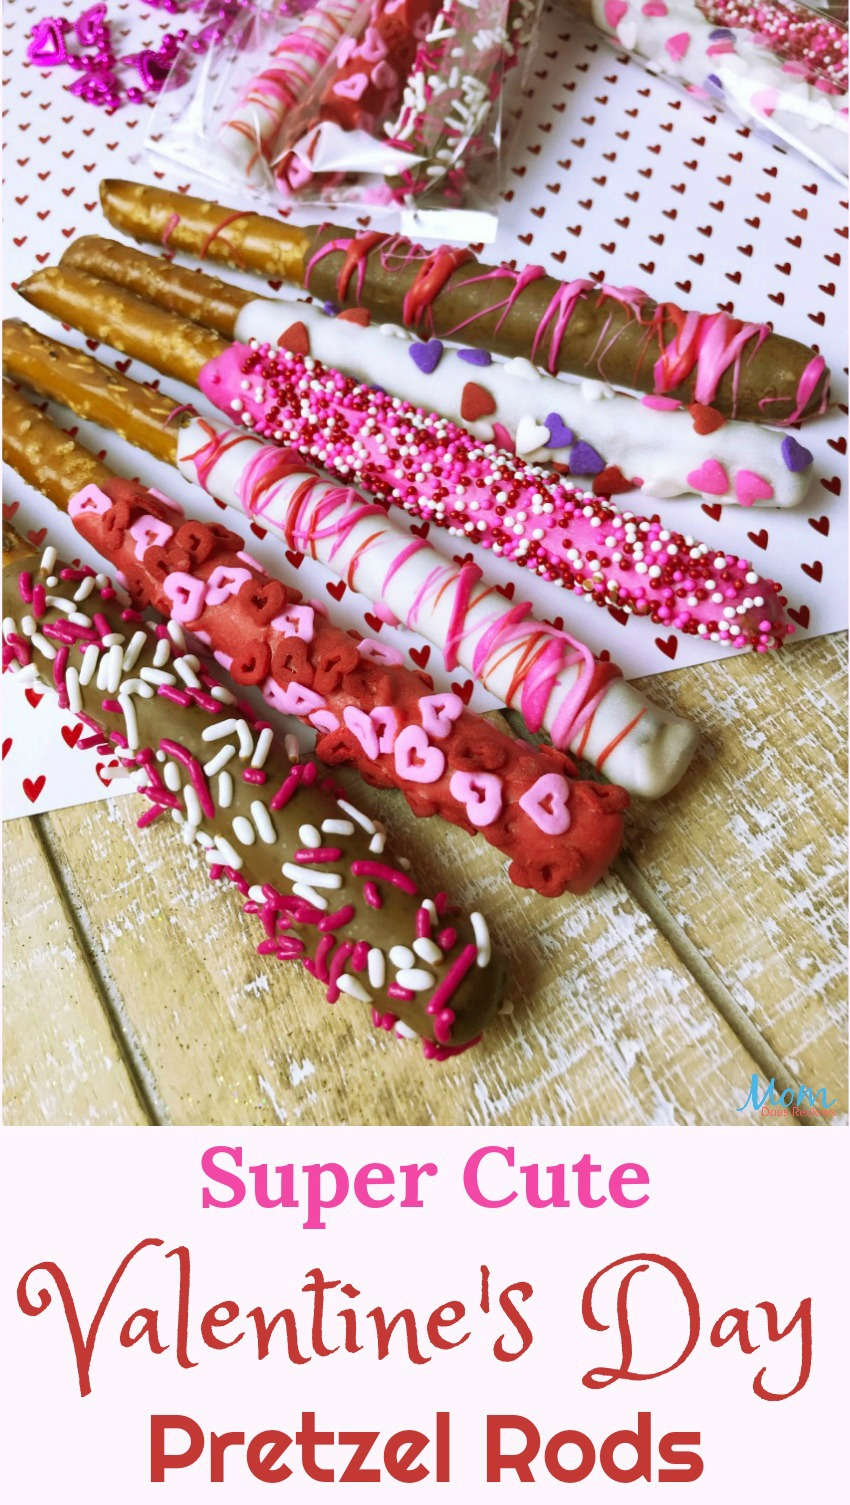 Super Cute Valentine's Day Pretzel Rods #Sweet2019 #sweets #treats #valentinesday #love #yummy #funfood